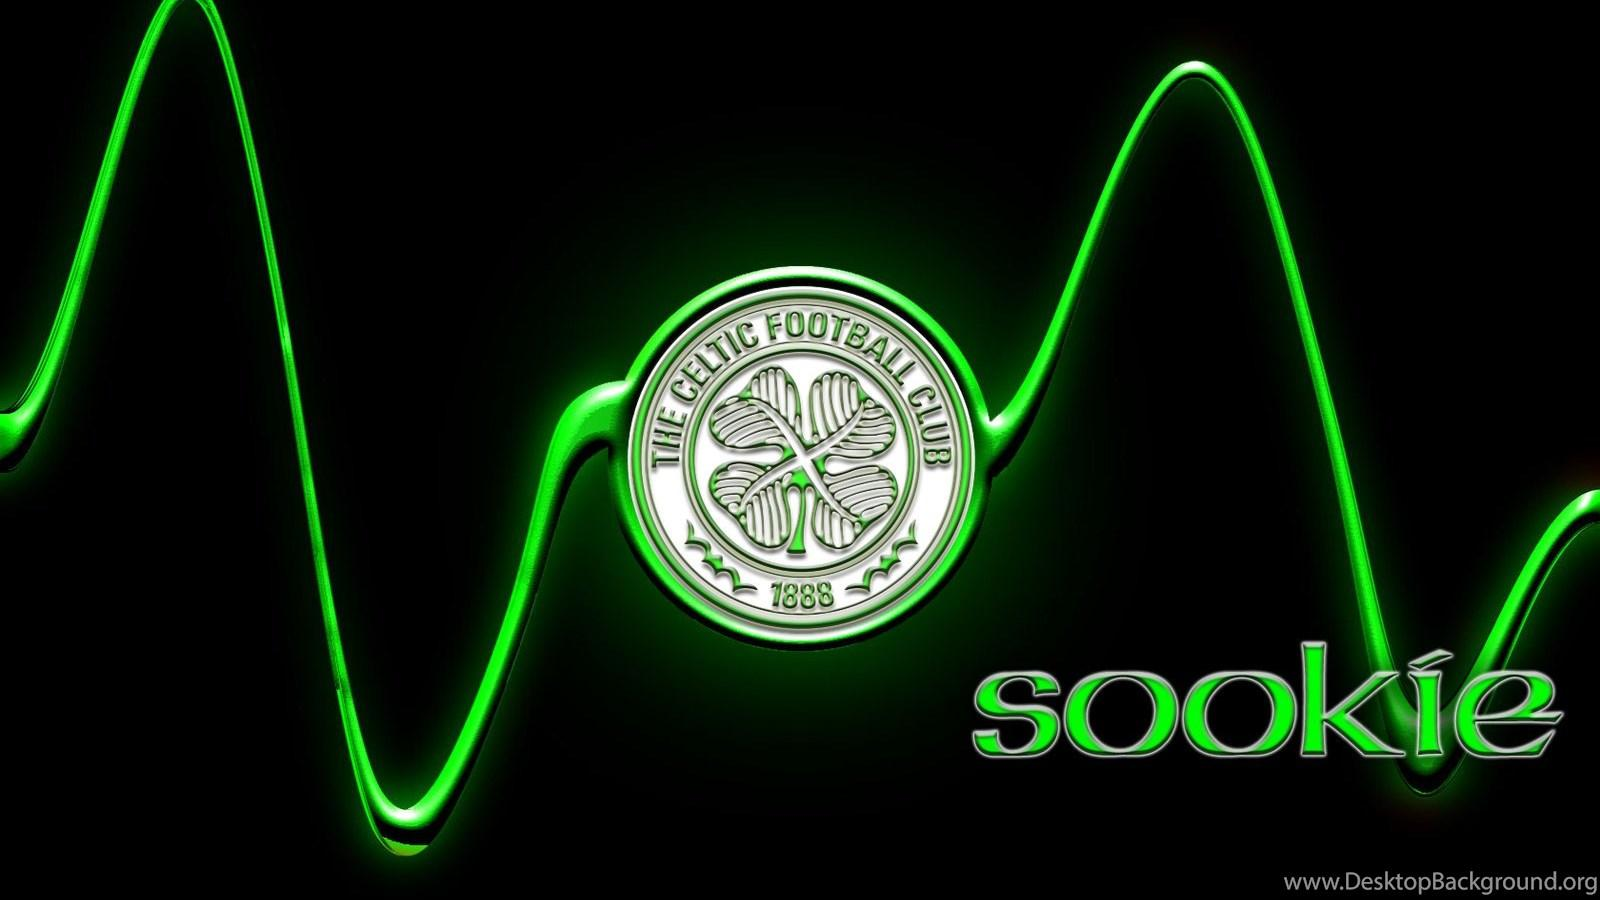 Sookie Celtic FC Wallpapers 1 By Sookiesooker On DeviantArt Desktop